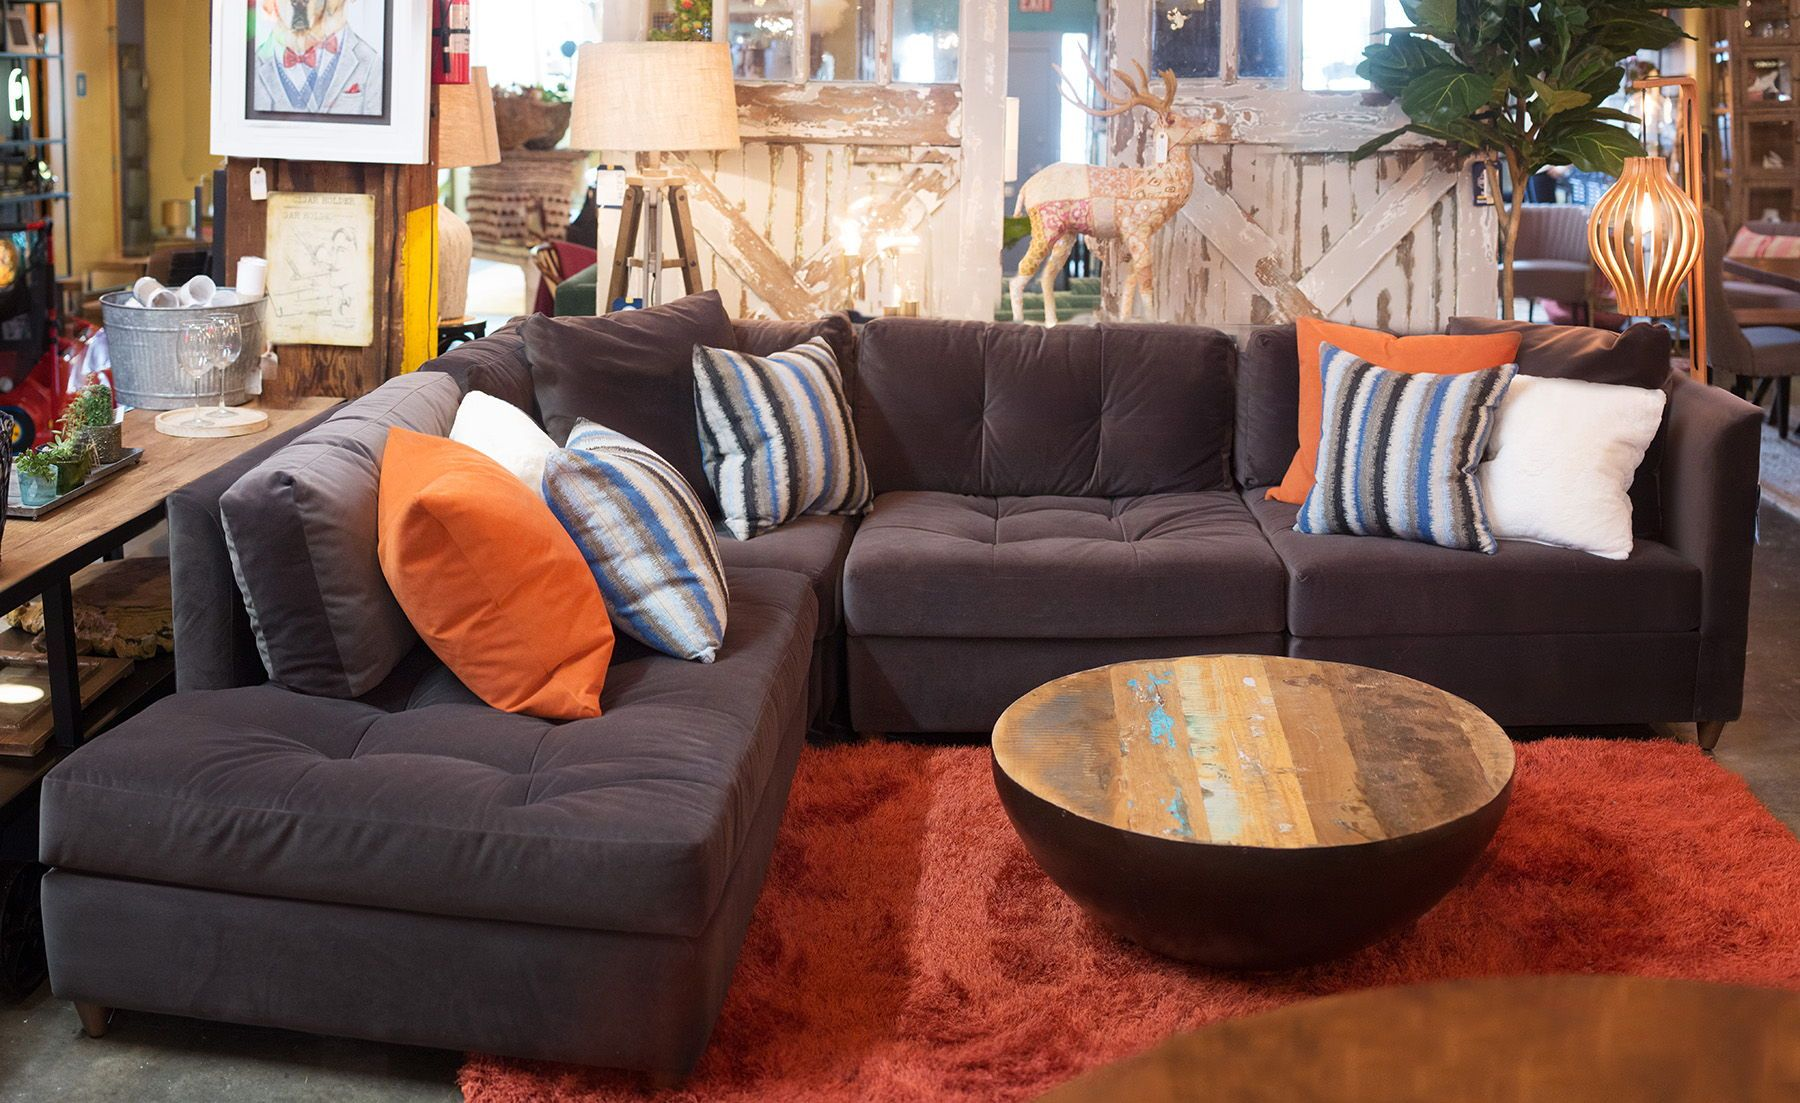 A Melt Into Me Lush Sectional From City Home In Portland Oregon Living Room Style Home Furniture